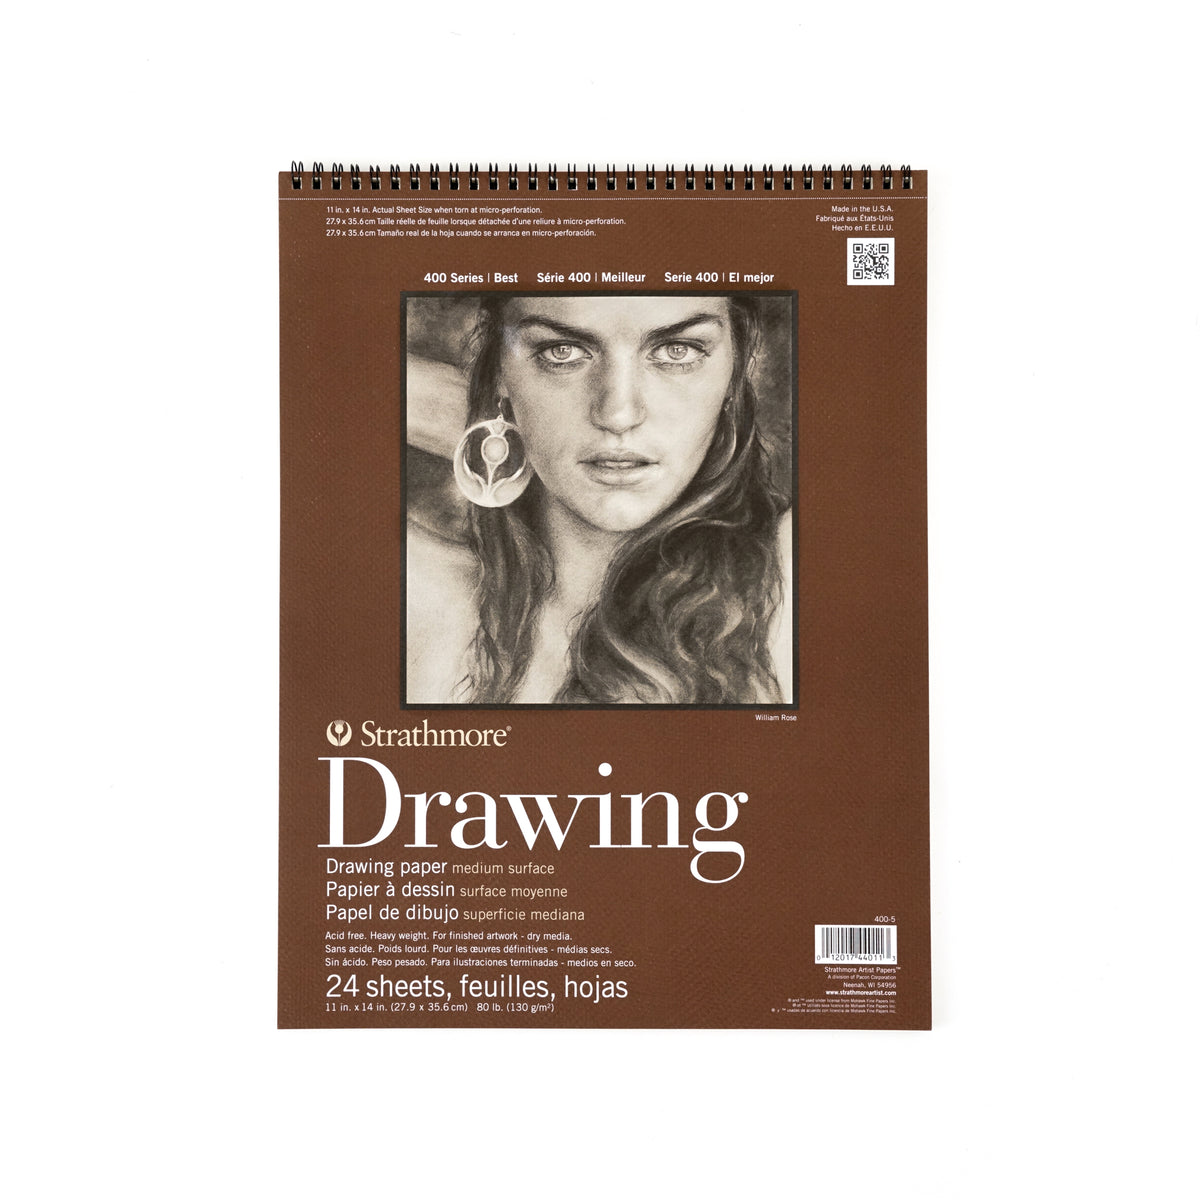 Strathmore Drawing Paper Pad - 400 Series - Medium Surface